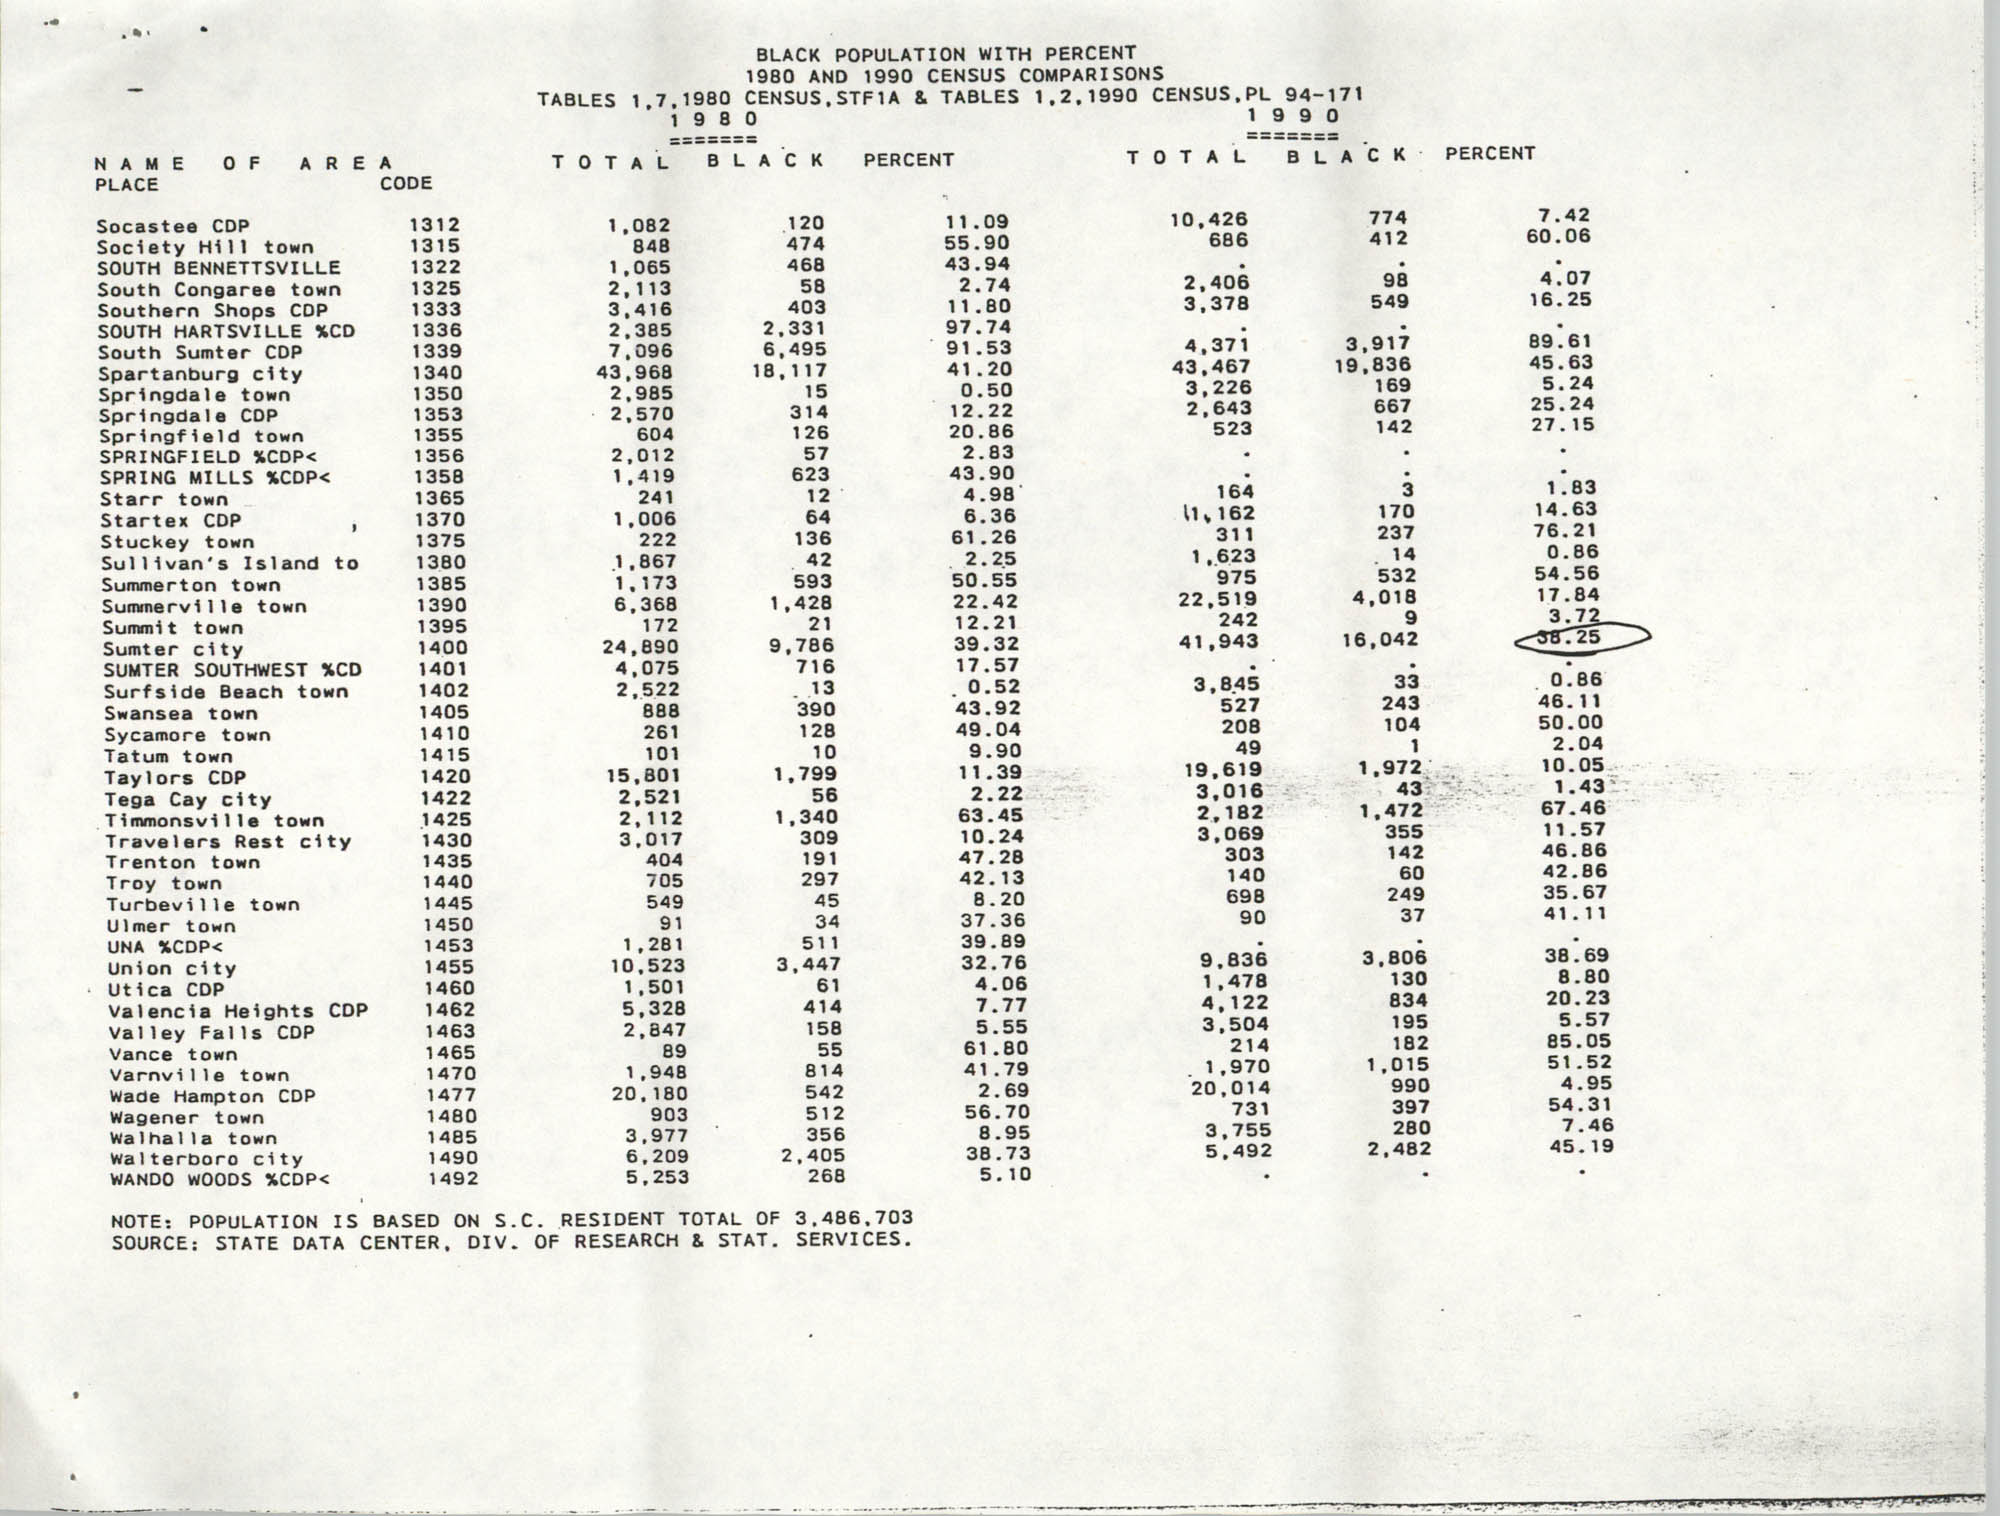 Black Population with Percent, 1980 and 1990 Census Comparison, Page 9